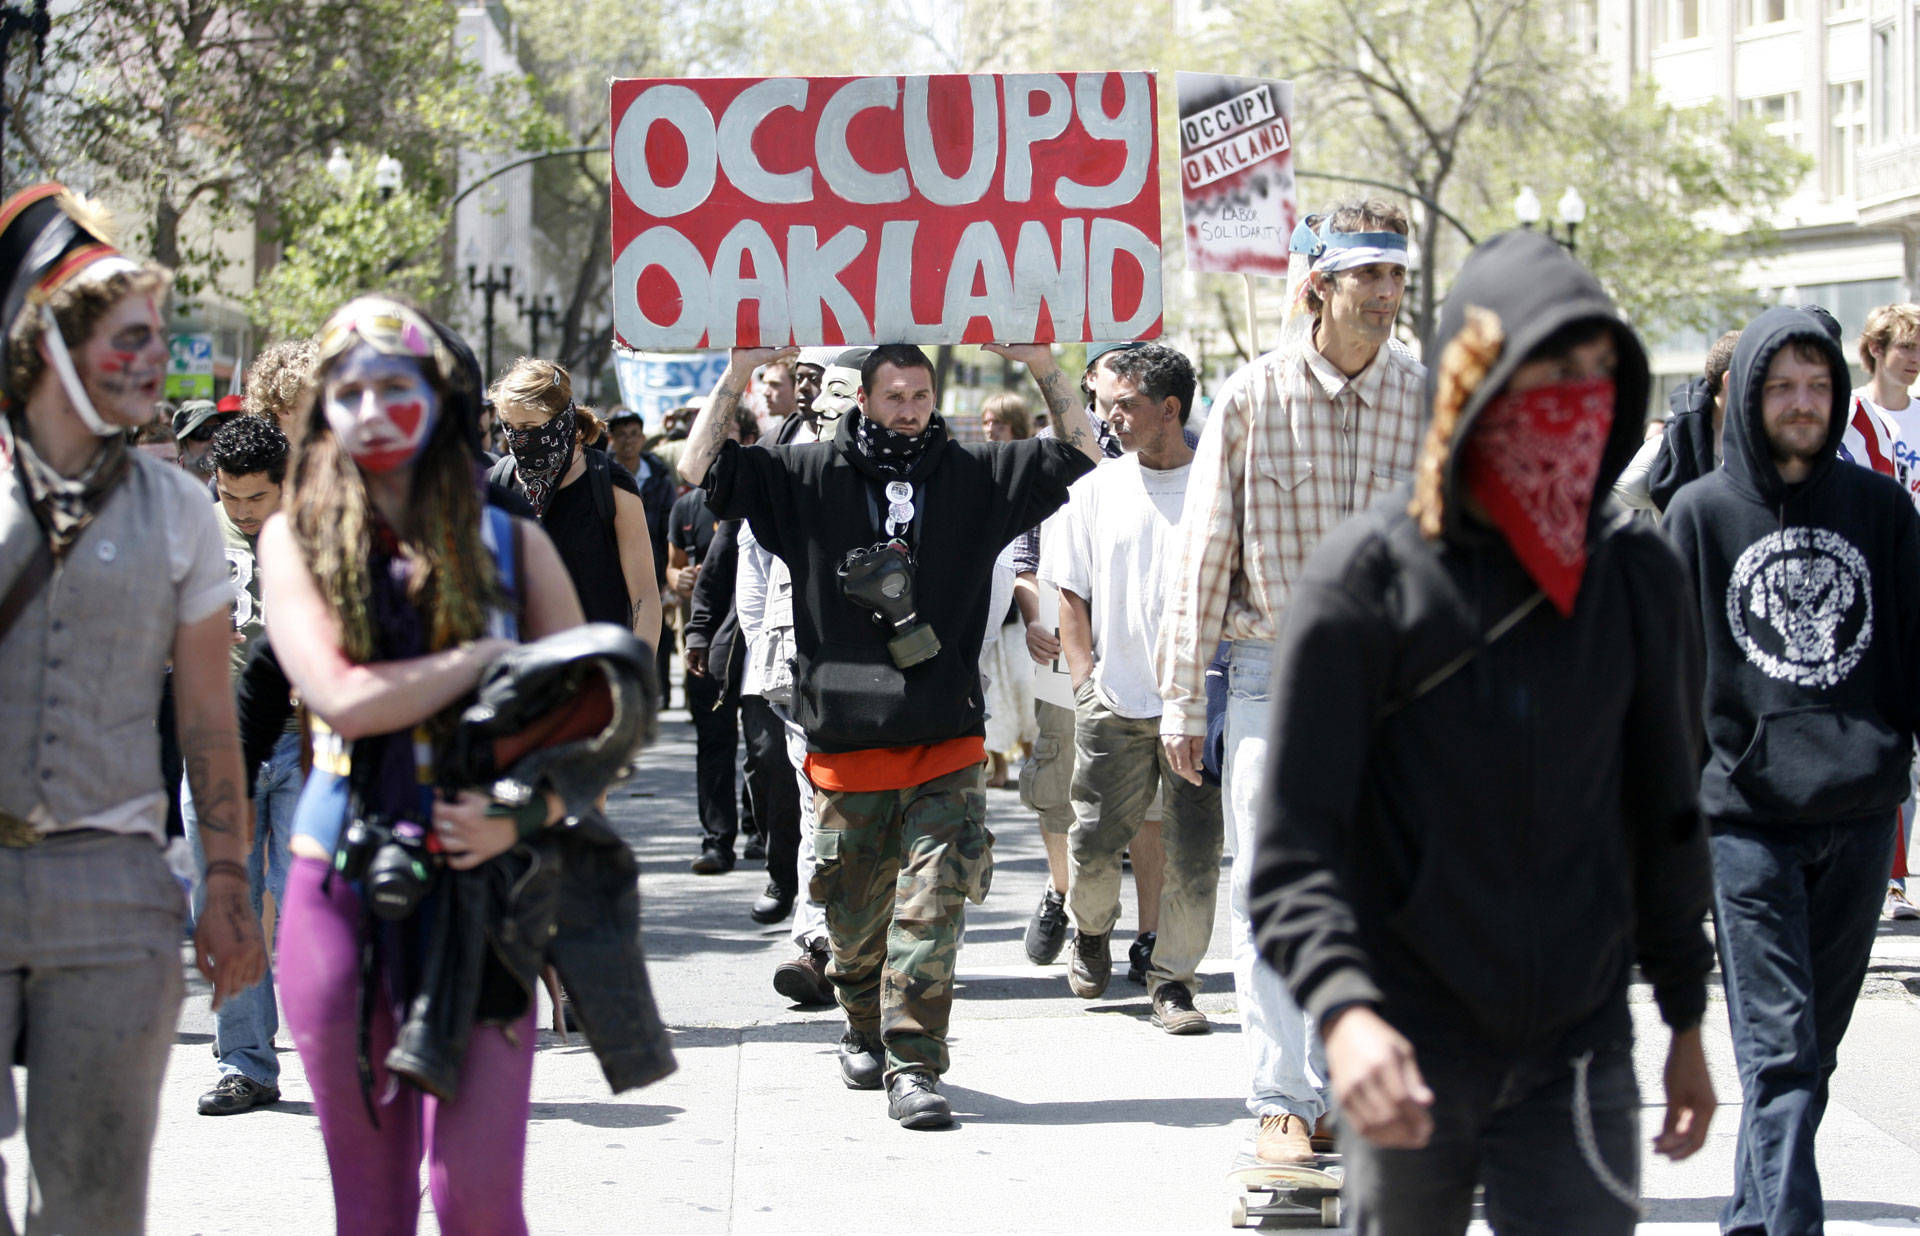 5 Years After Occupy Oakland, Still Fighting for the 99 Percent